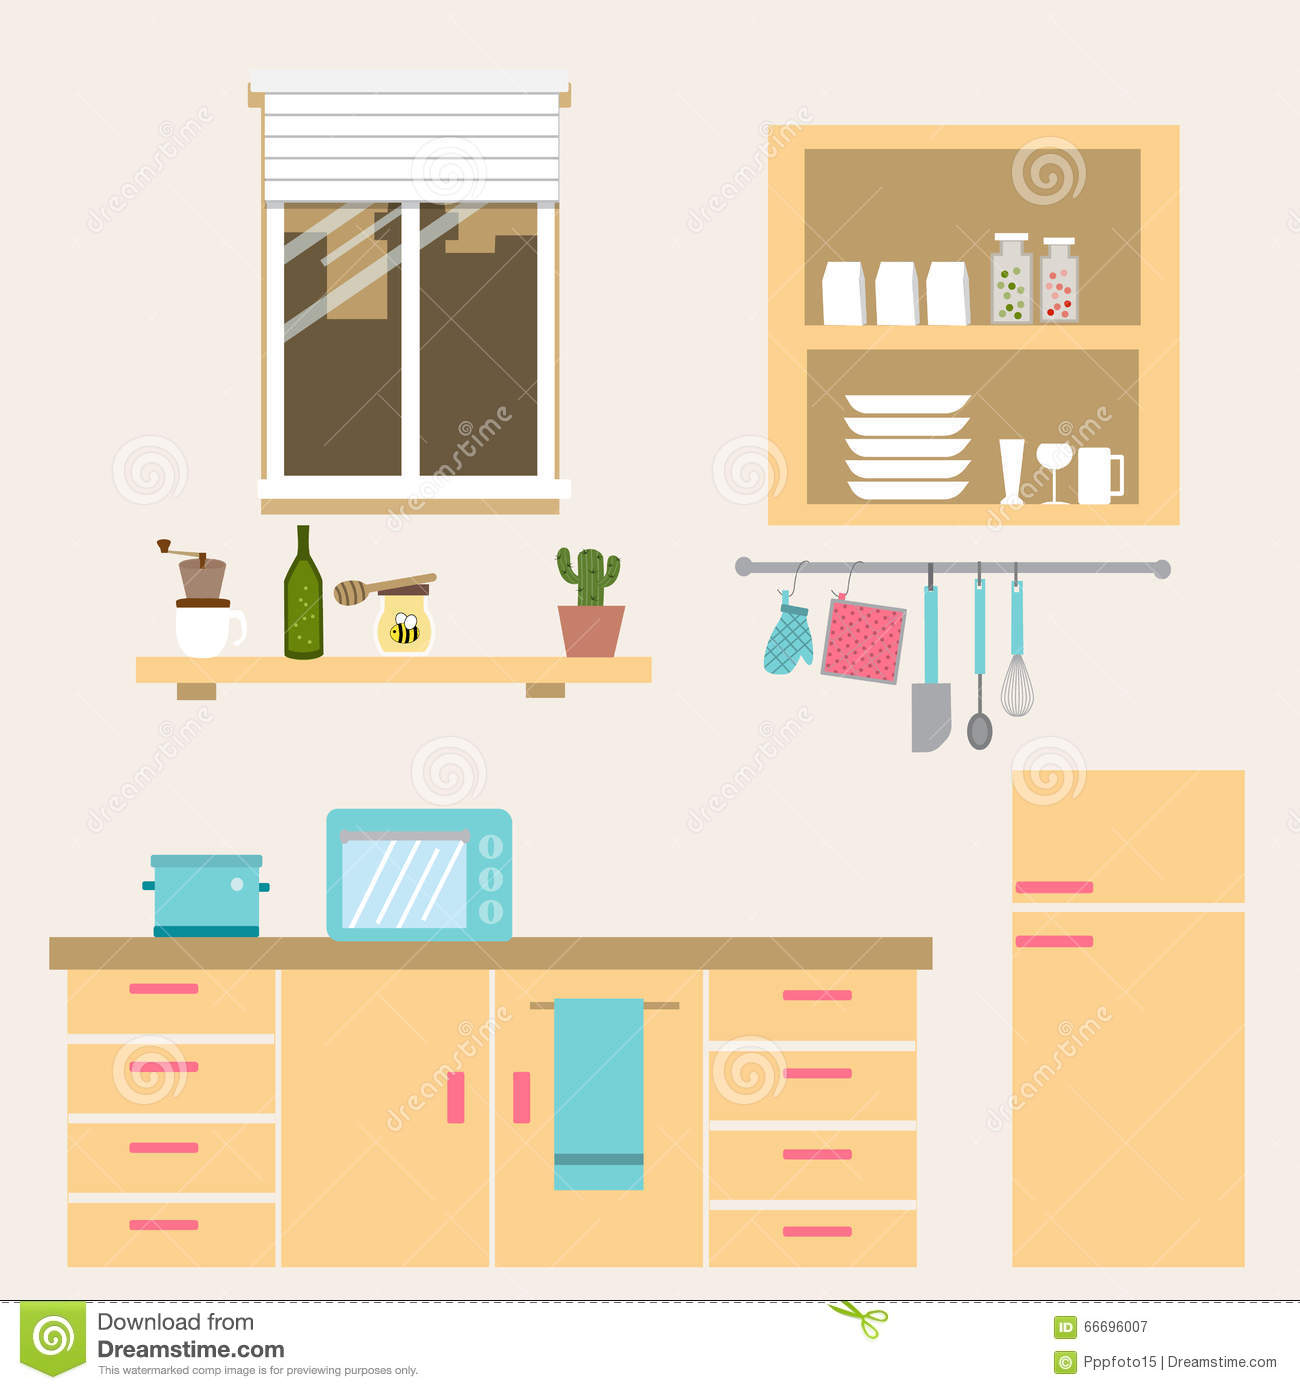 Kitchen Cabinet Clip Art: The Kitchen Room Vector Stock Vector. Illustration Of